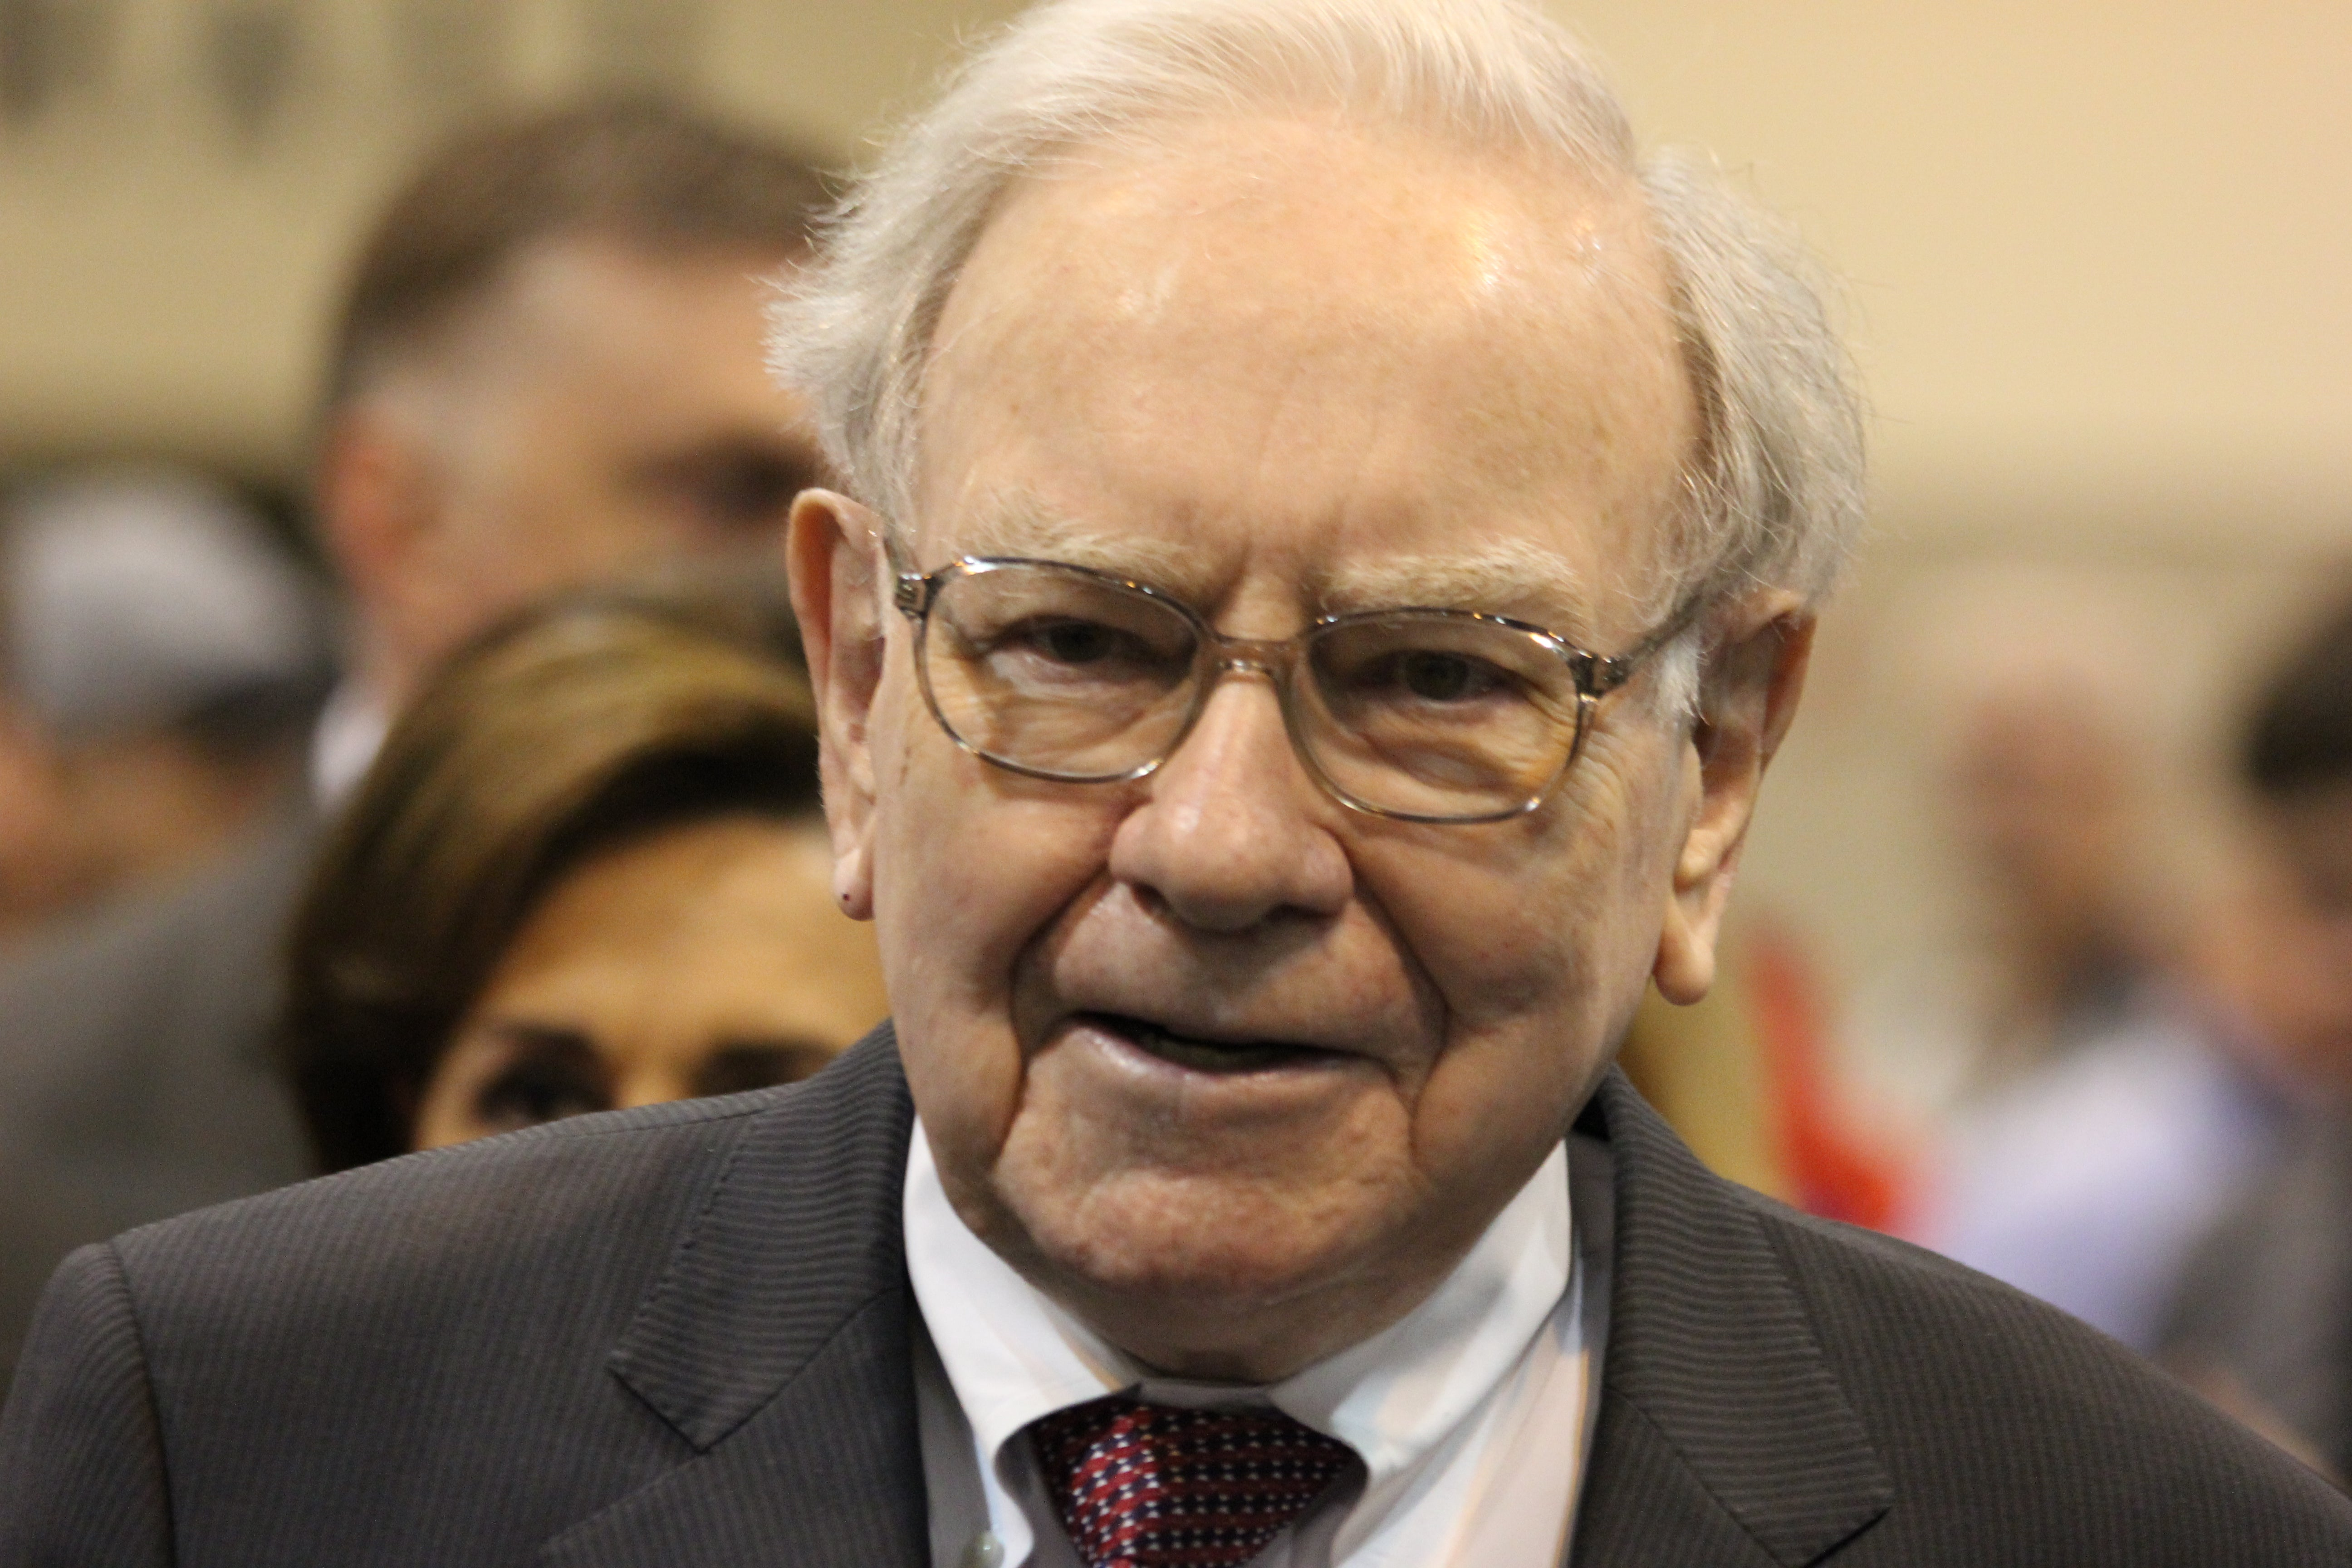 Warren Buffett Sells Airline Stocks in An Abrupt Reversal: What Does It Say About the Coronavirus Bear Market? | The Motley Fool